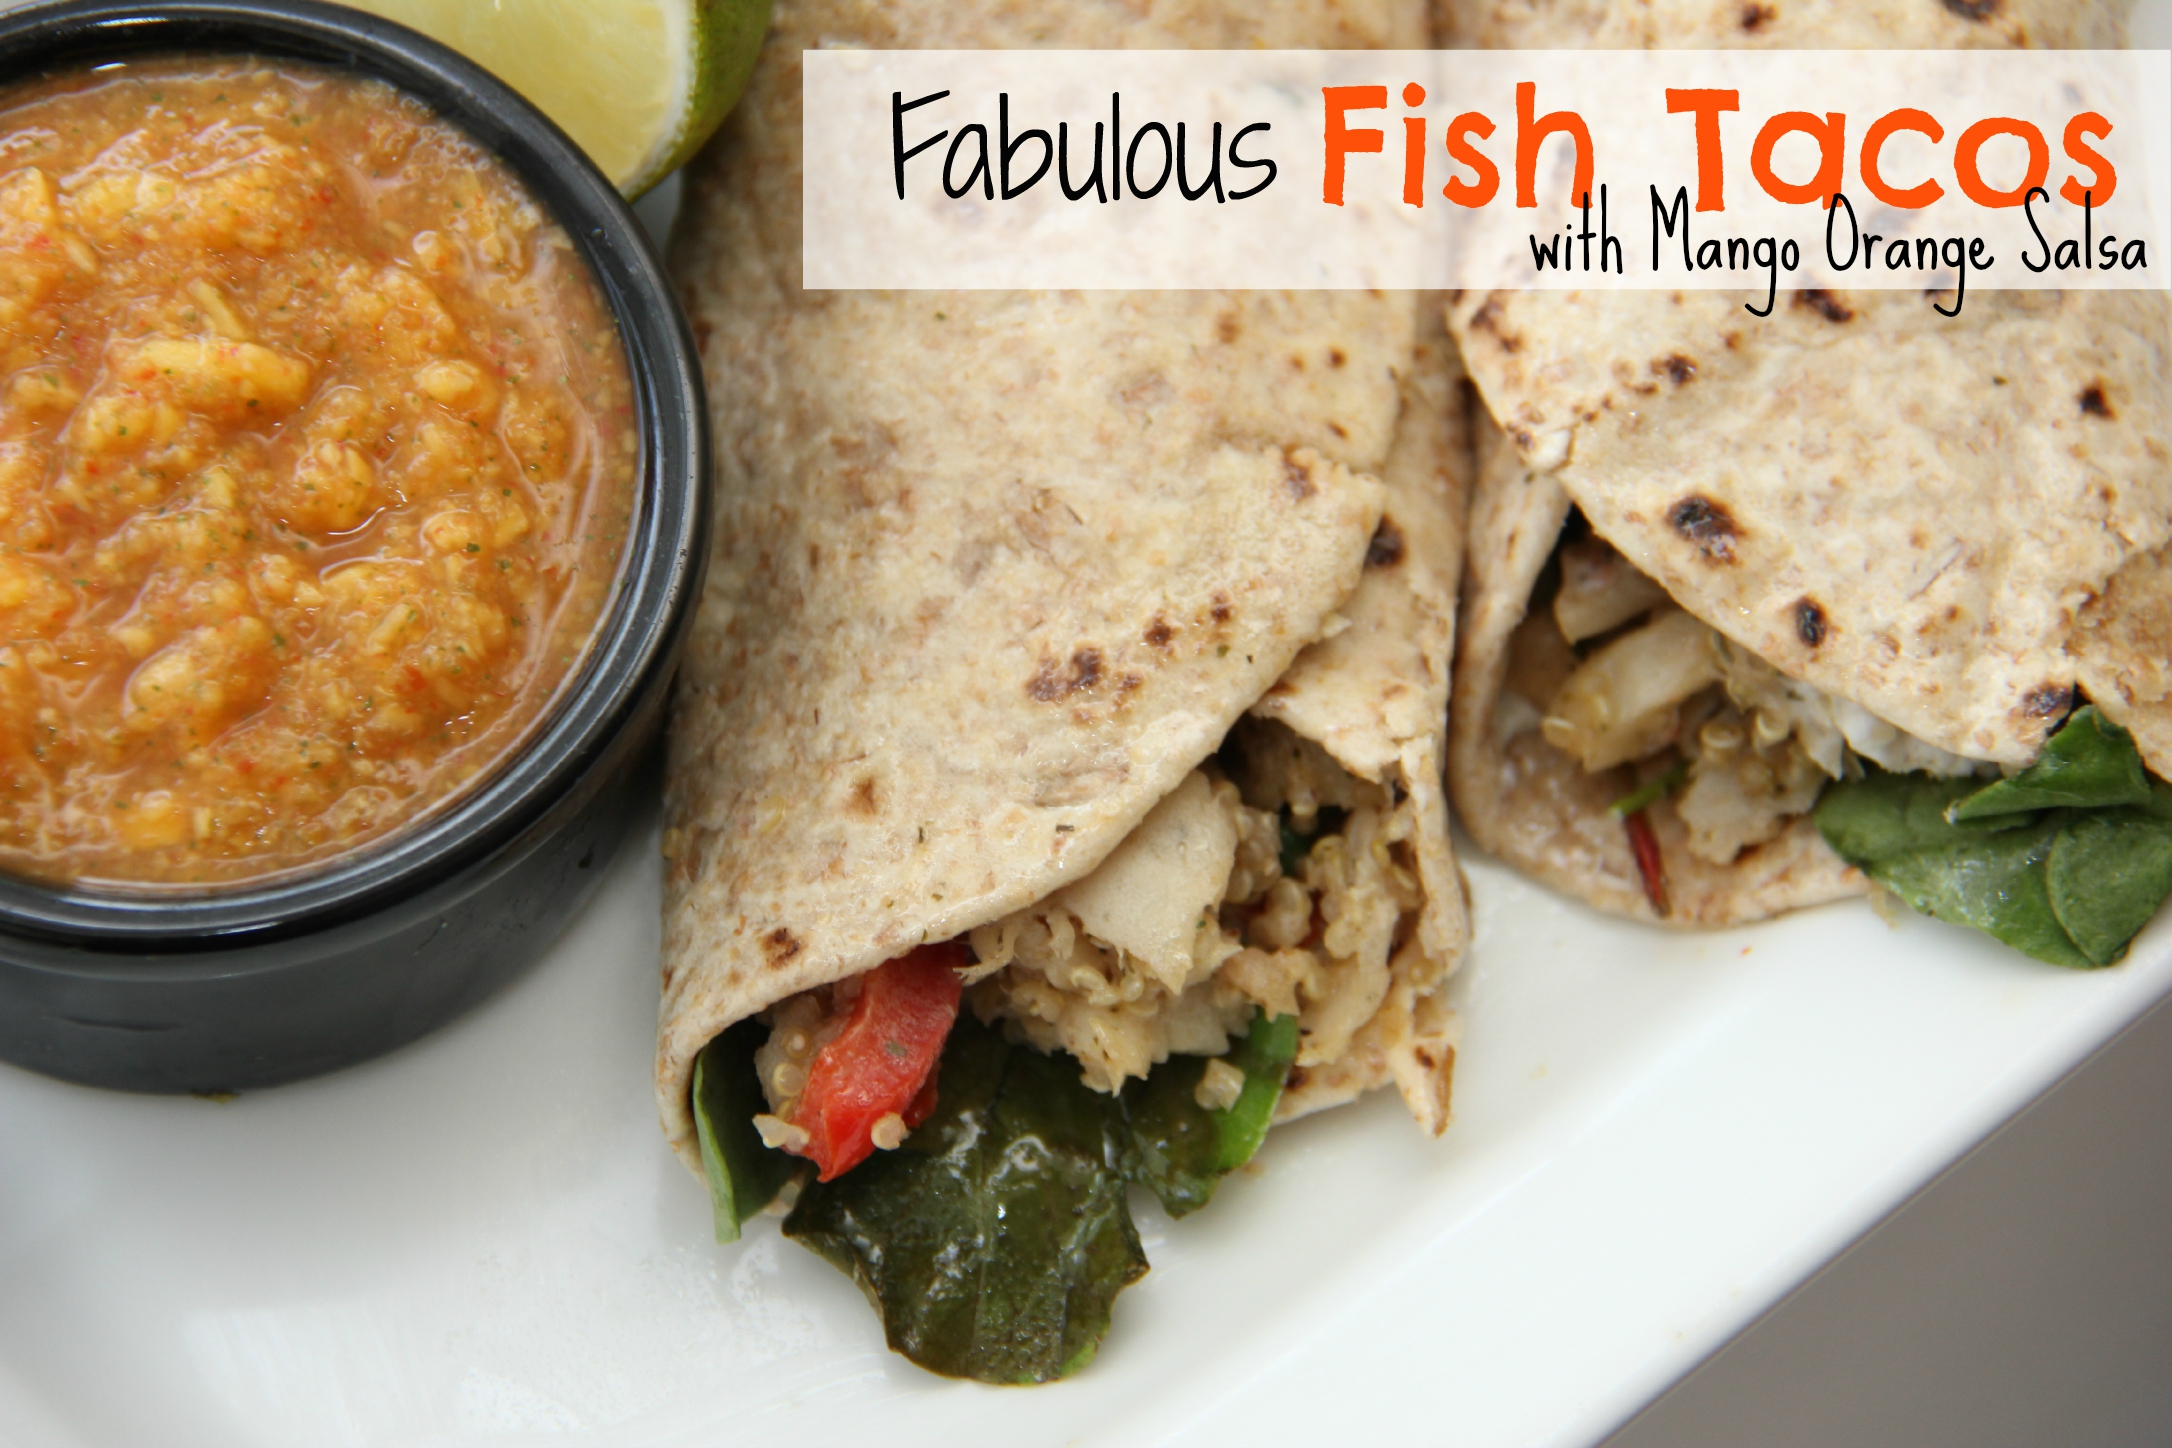 Healthy lunchtime challenge fabulous fish tacos healthy ideas for packs all the food groups into one dish great for lunch forumfinder Gallery